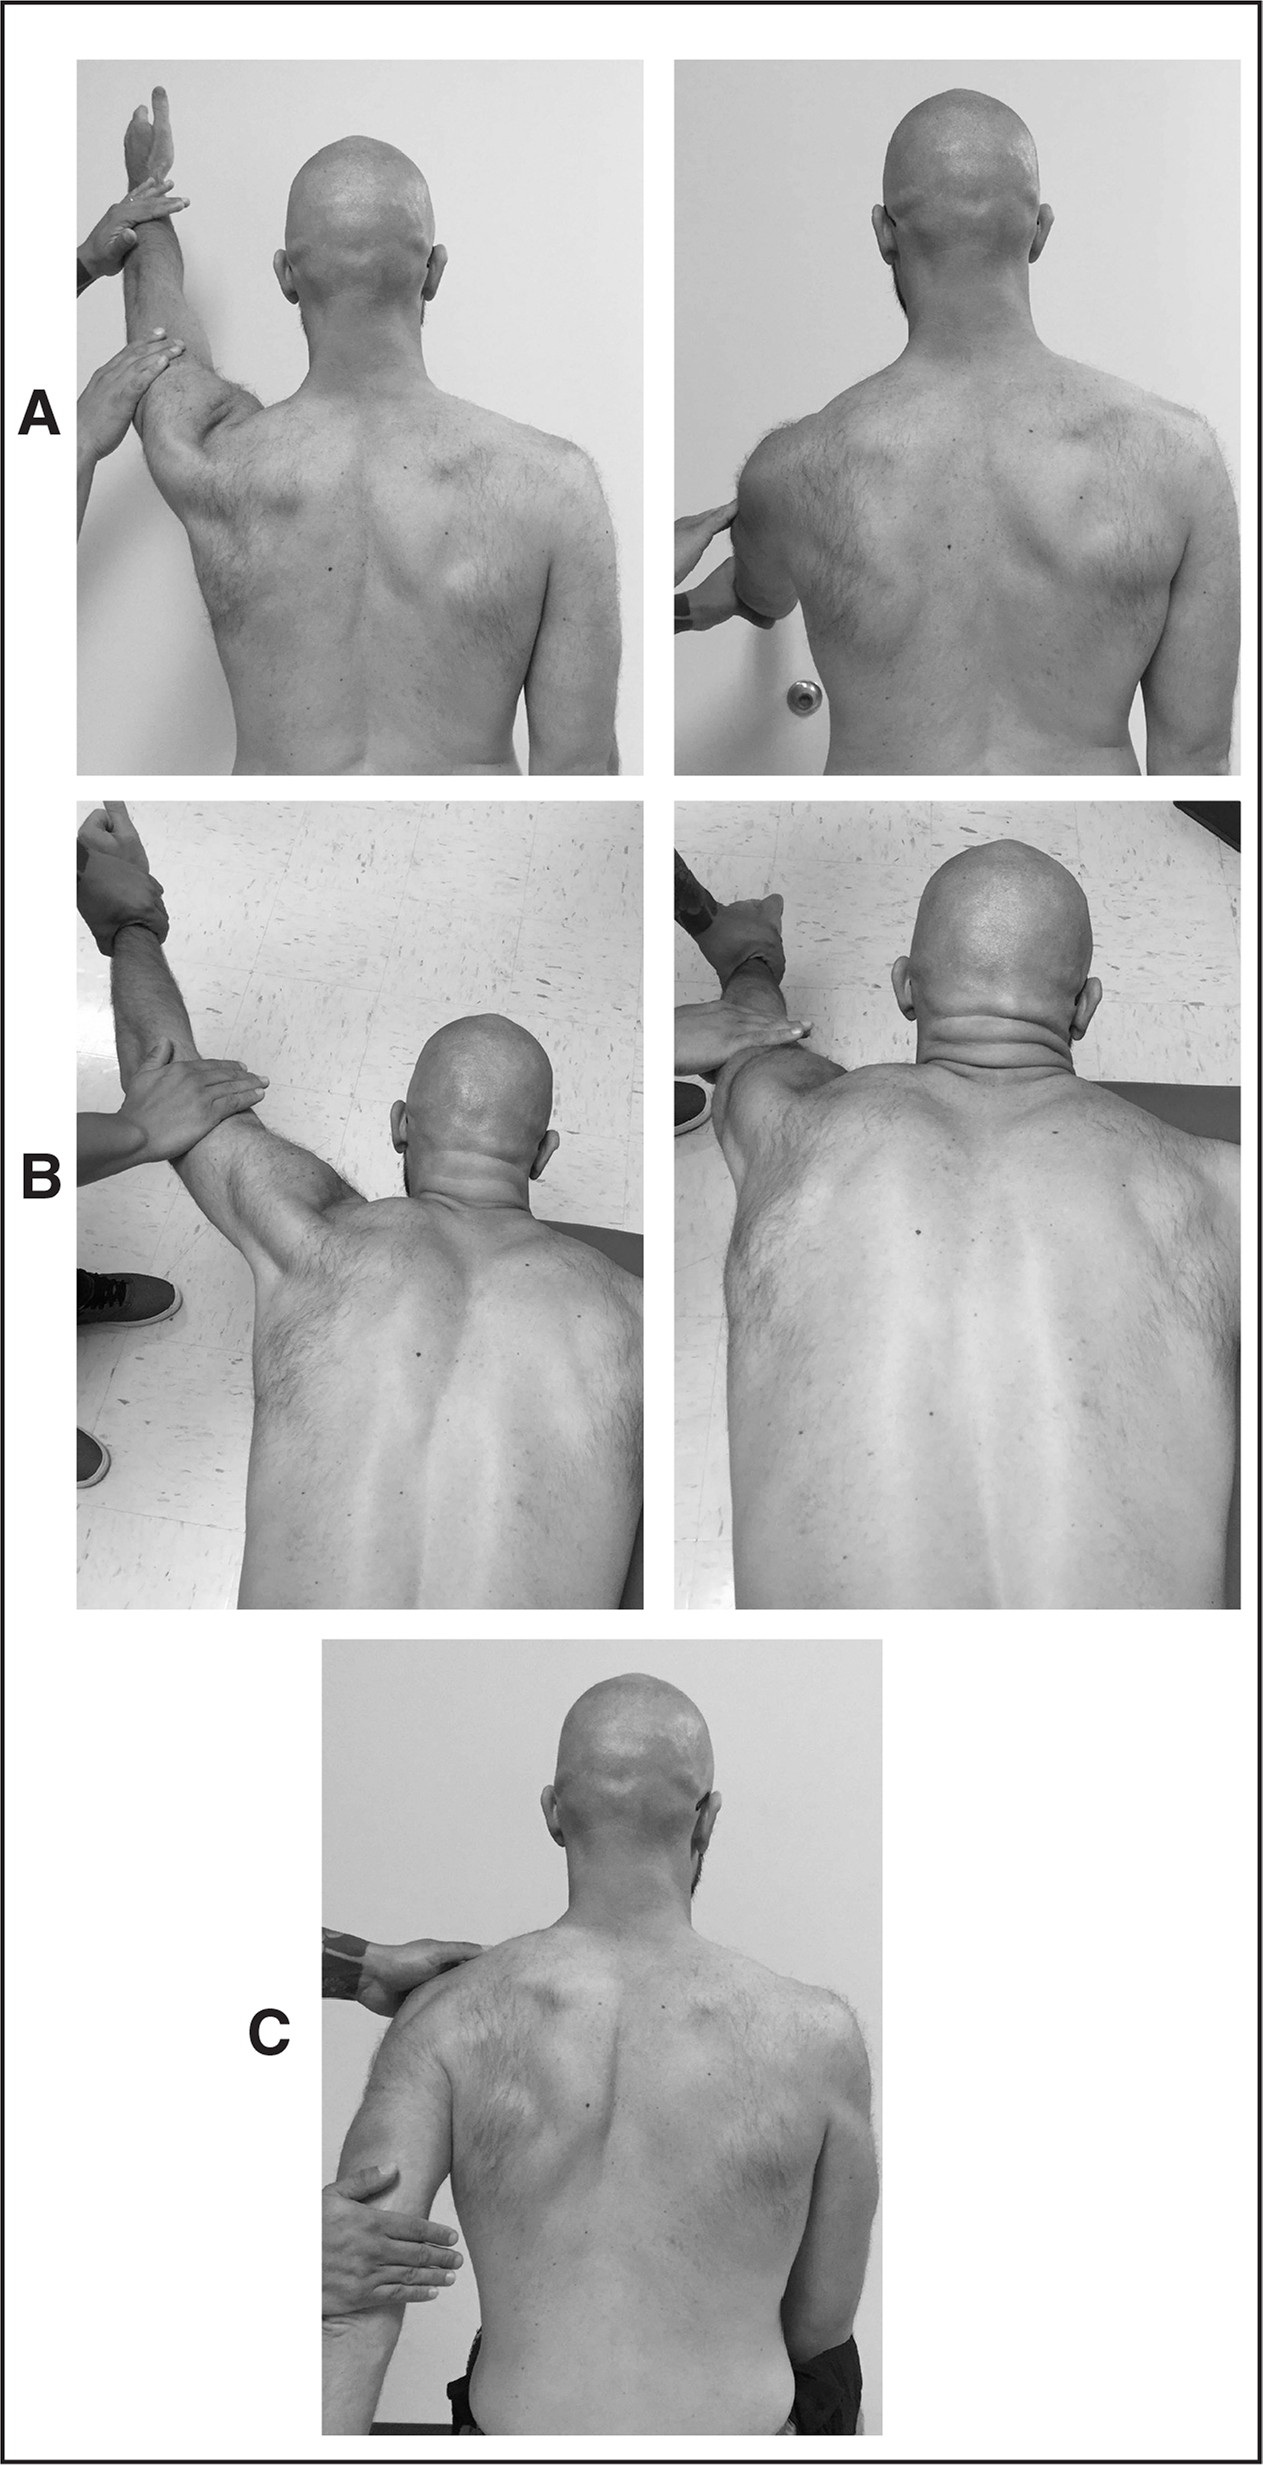 Manual muscle test for the (A) serratus anterior and (B) lower and middle trapezius showing (left) starting and (right) end positions, and (C) rhomboid muscles.